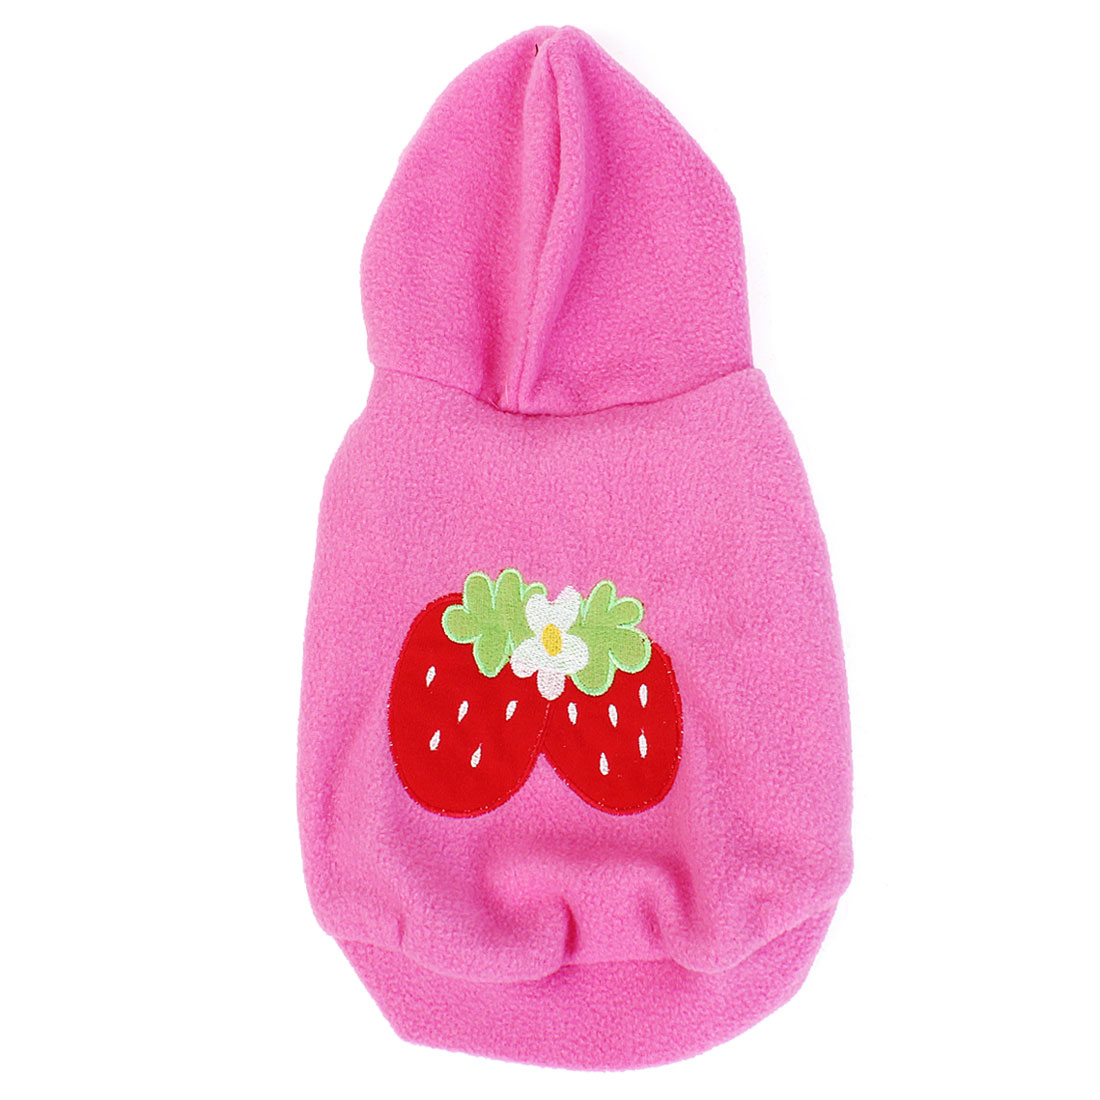 Winter Warm Strawberry Pattern Hoodie Sleeveless Pet Dog Doggy Apparel Coat Clothes Pink Size L